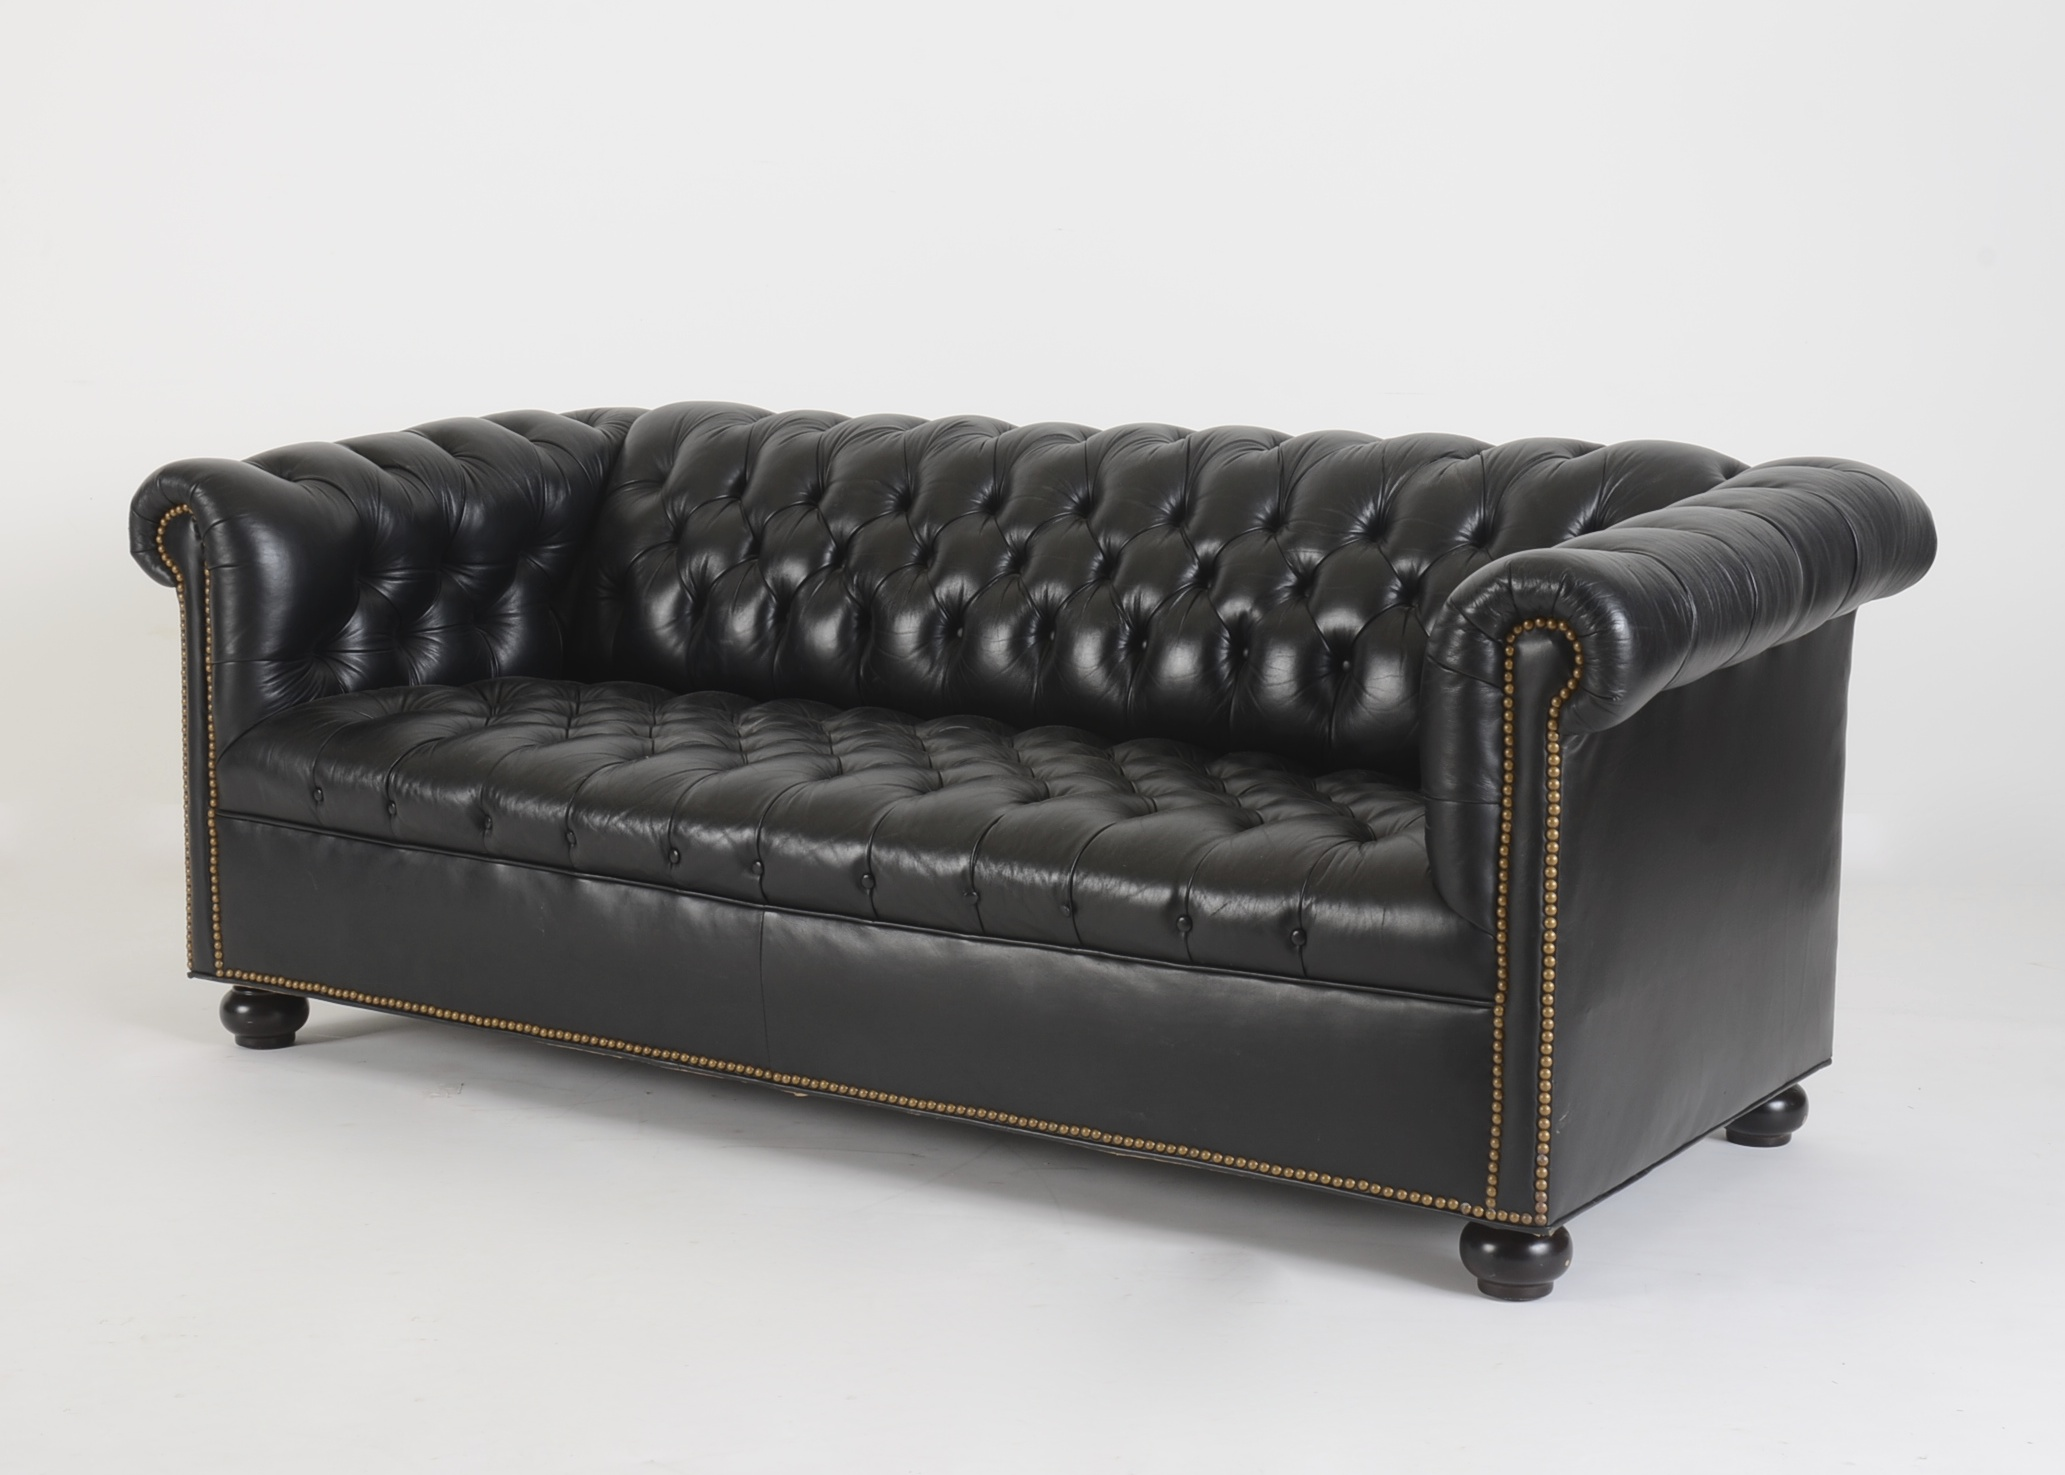 Black Leather Chesterfield Sofa EBTH